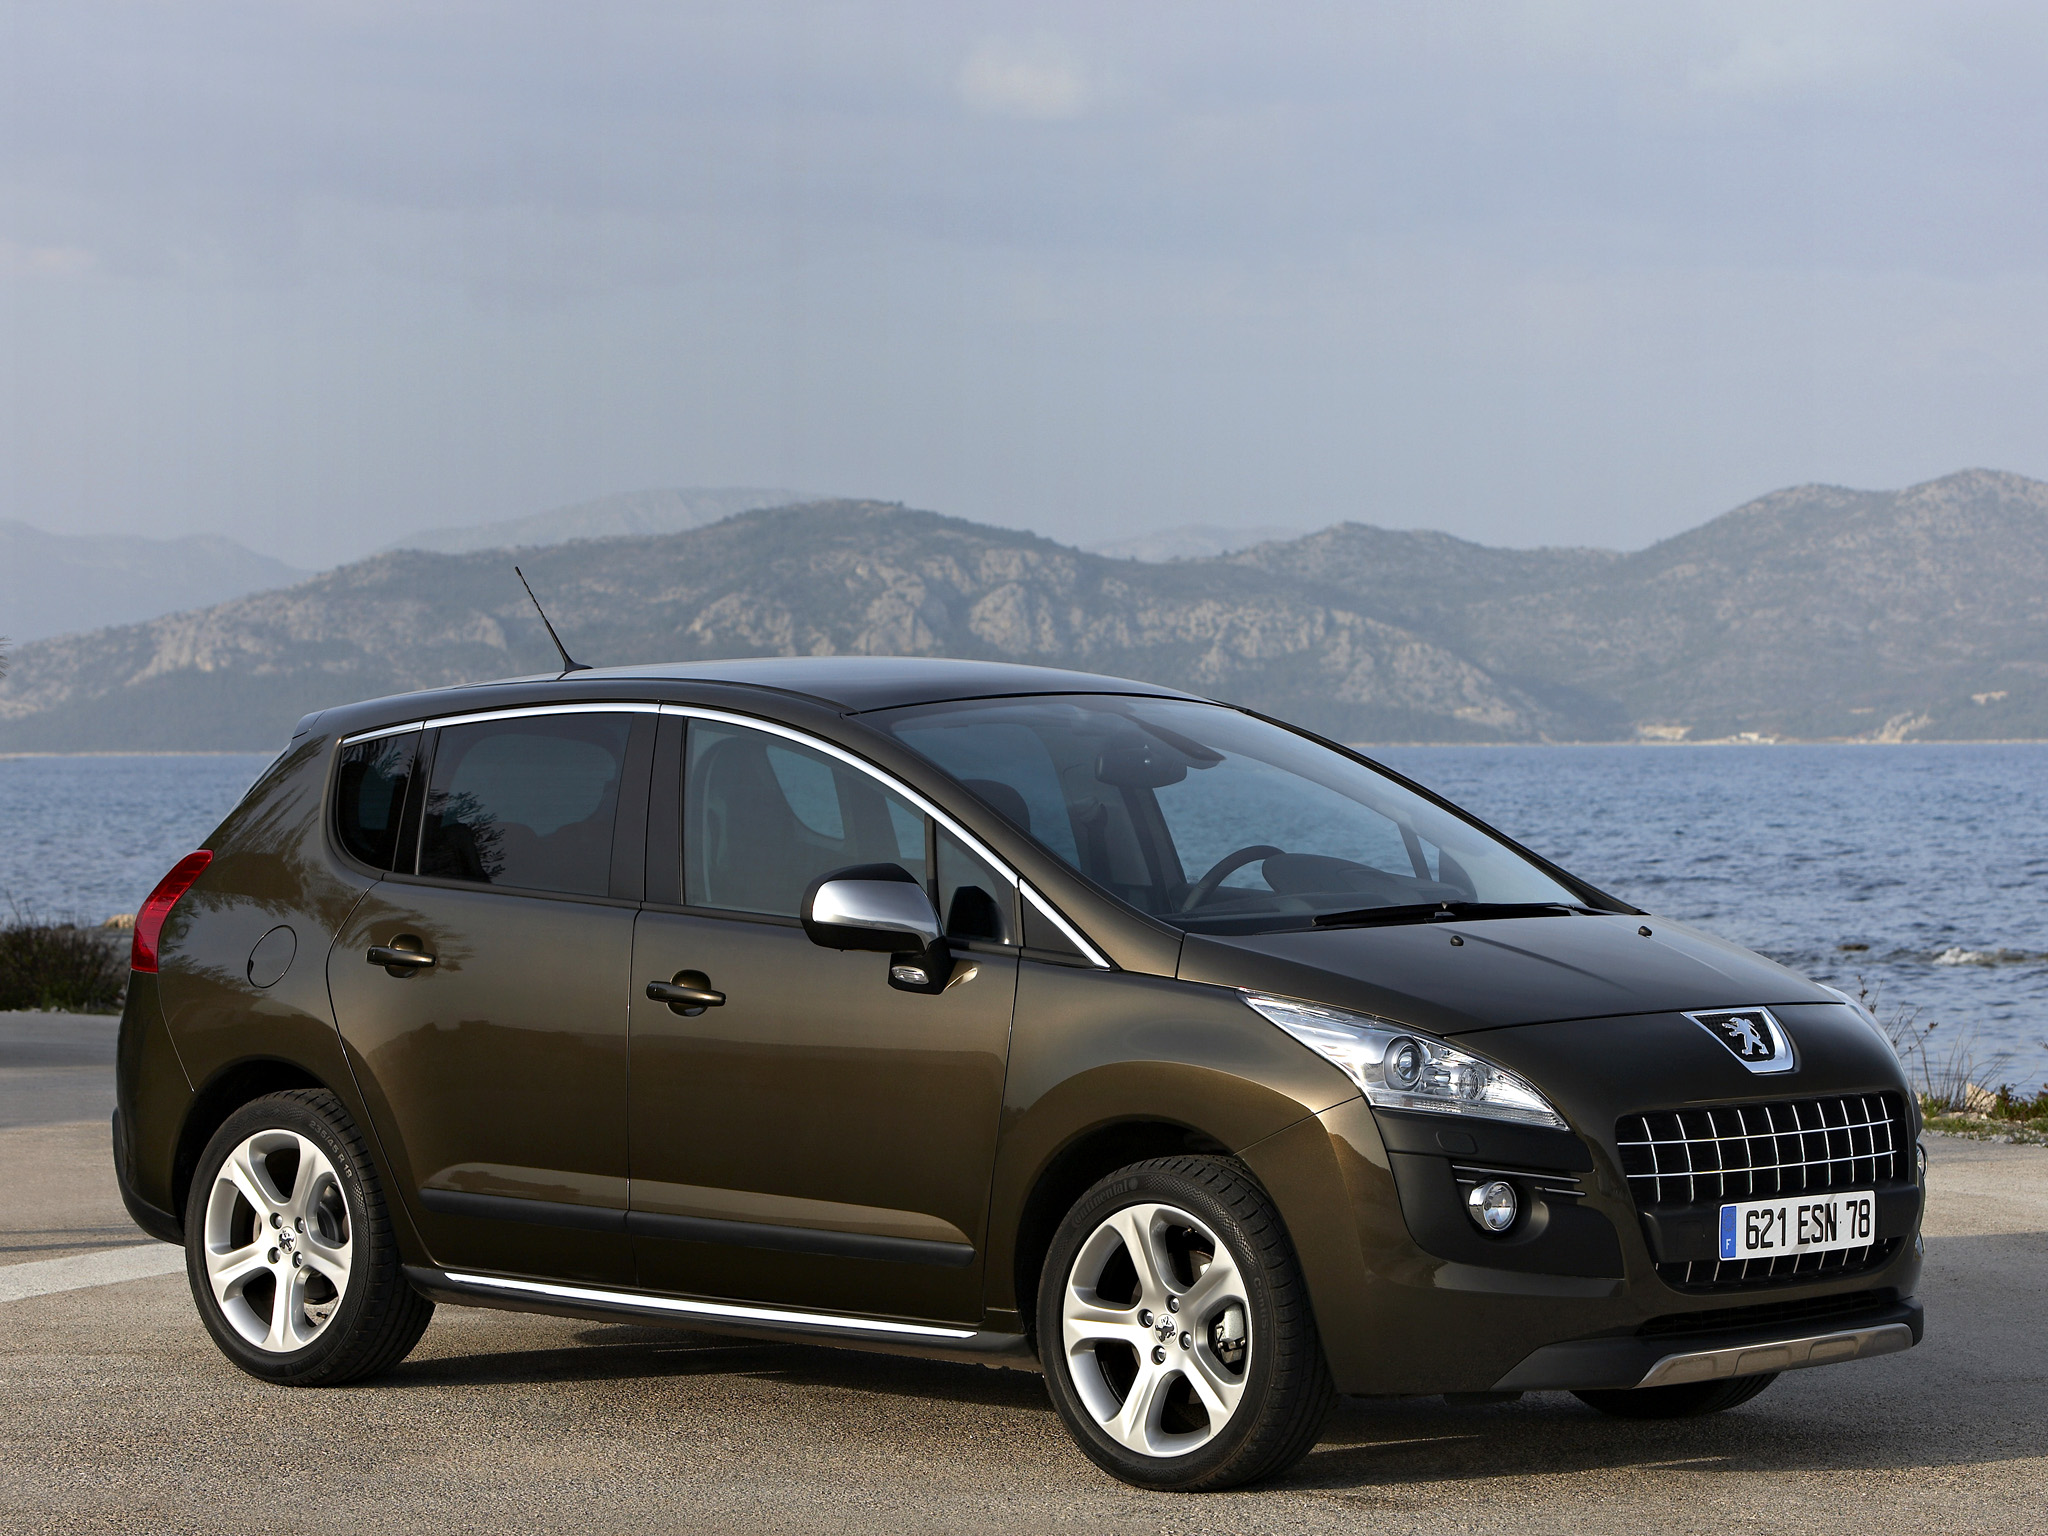 Pictures of peugeot 3008 #11